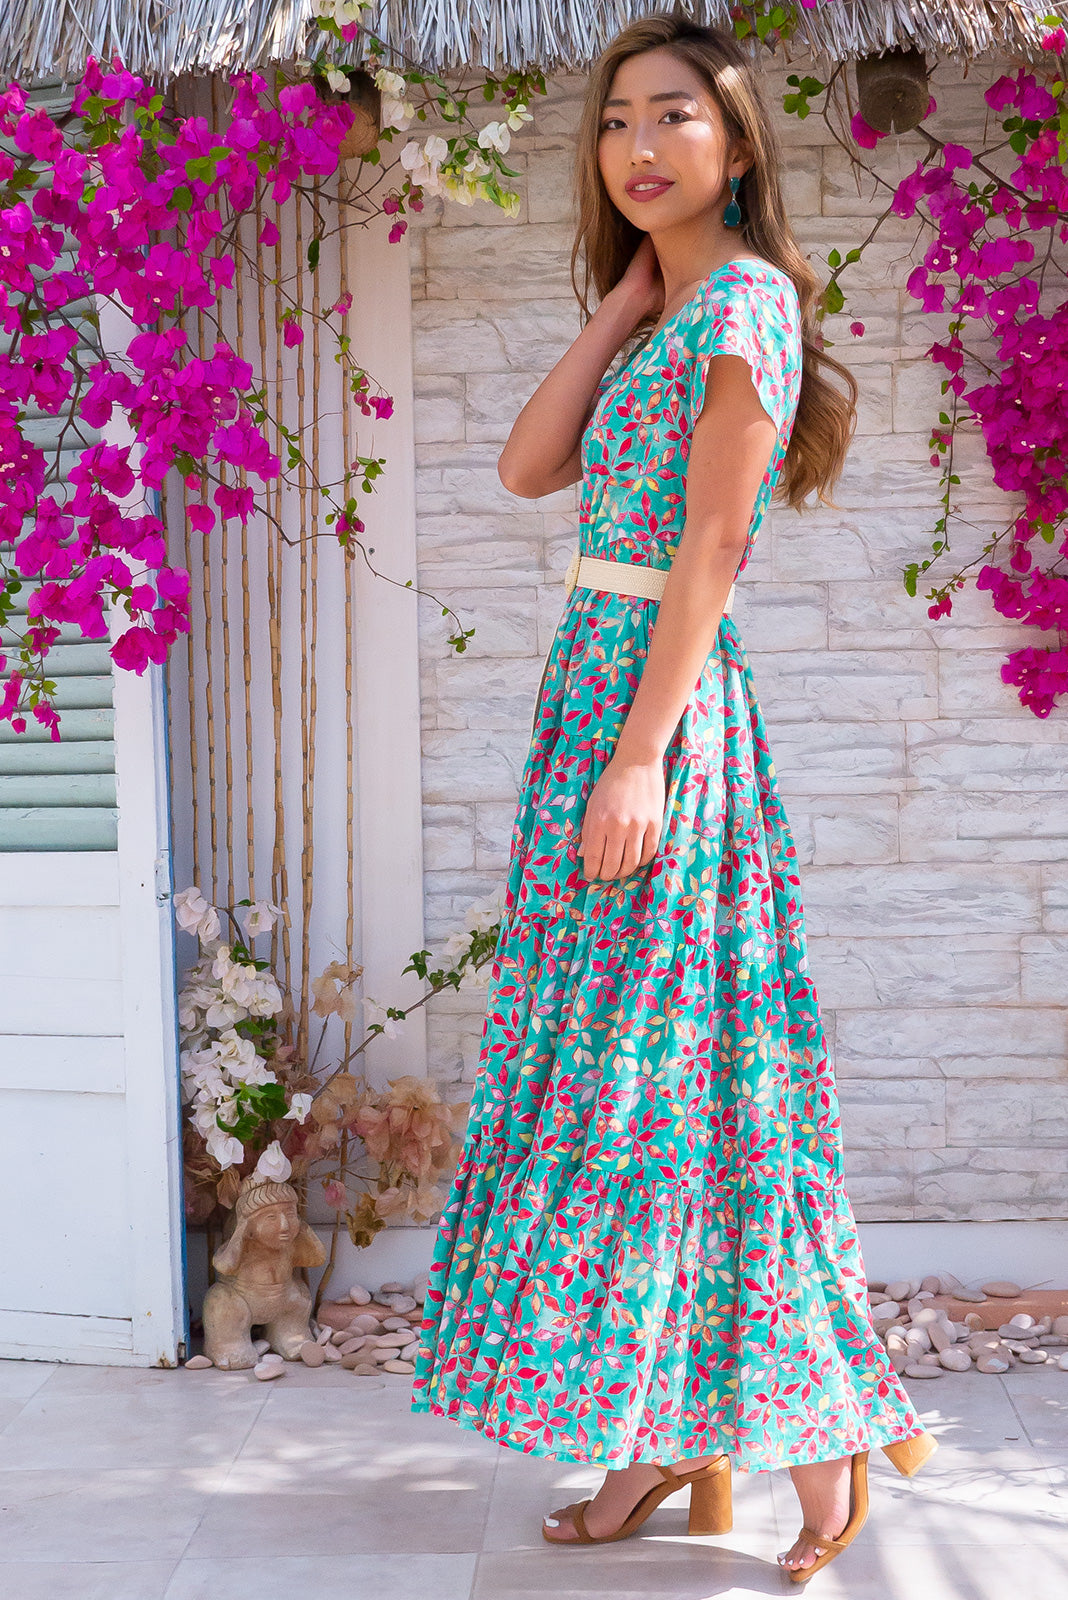 Lucky Lulu Green Fields Maxi Dress made from 100% cotton and perfect for spring/summer. Features cap sleeves, side pockets, tiered skirt.